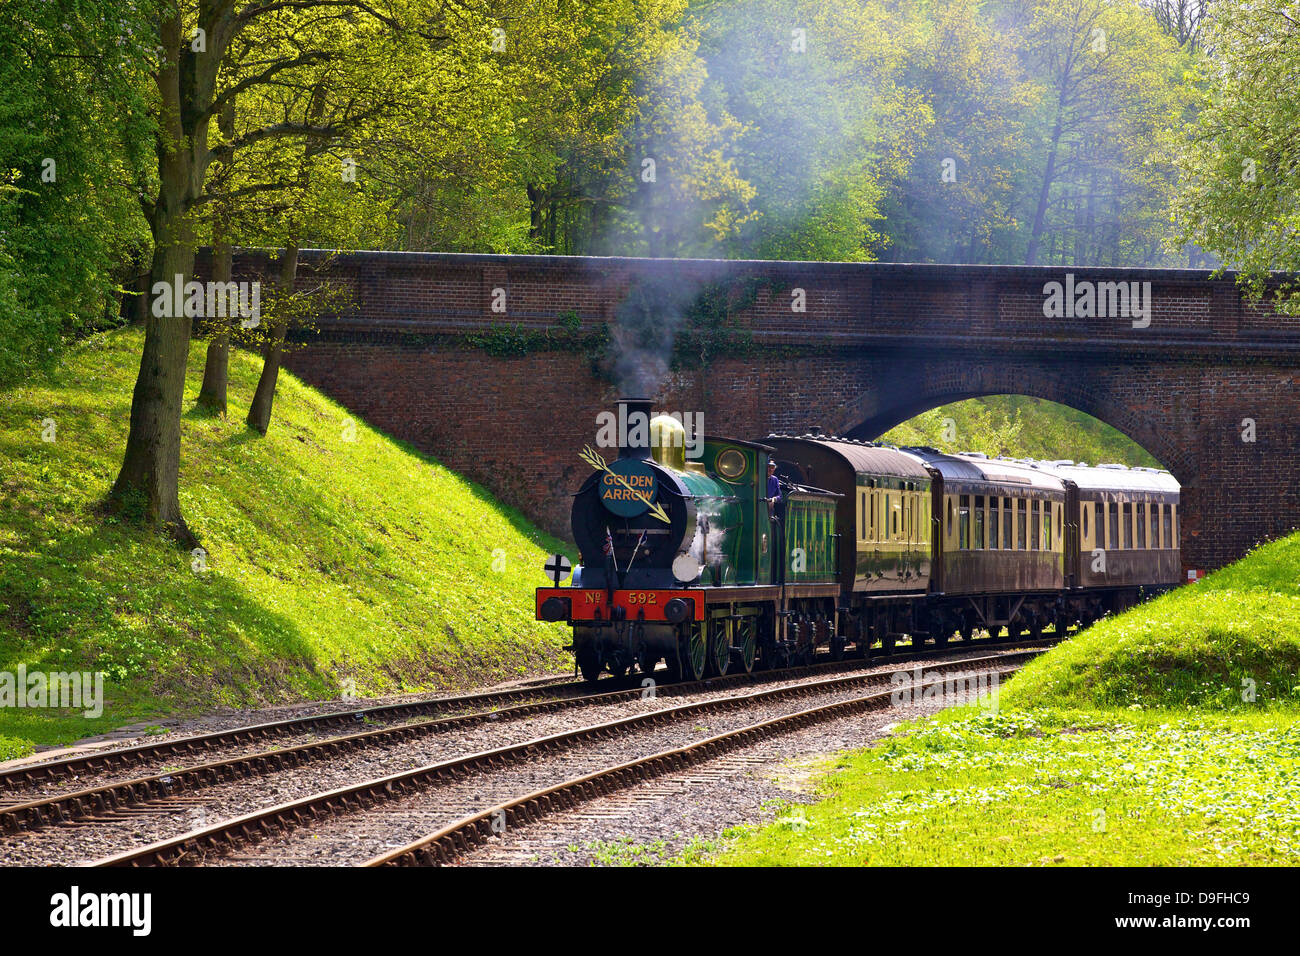 Dampfzug auf Bluebell Railway, Horsted Keynes, West Sussex, England, UK Stockbild